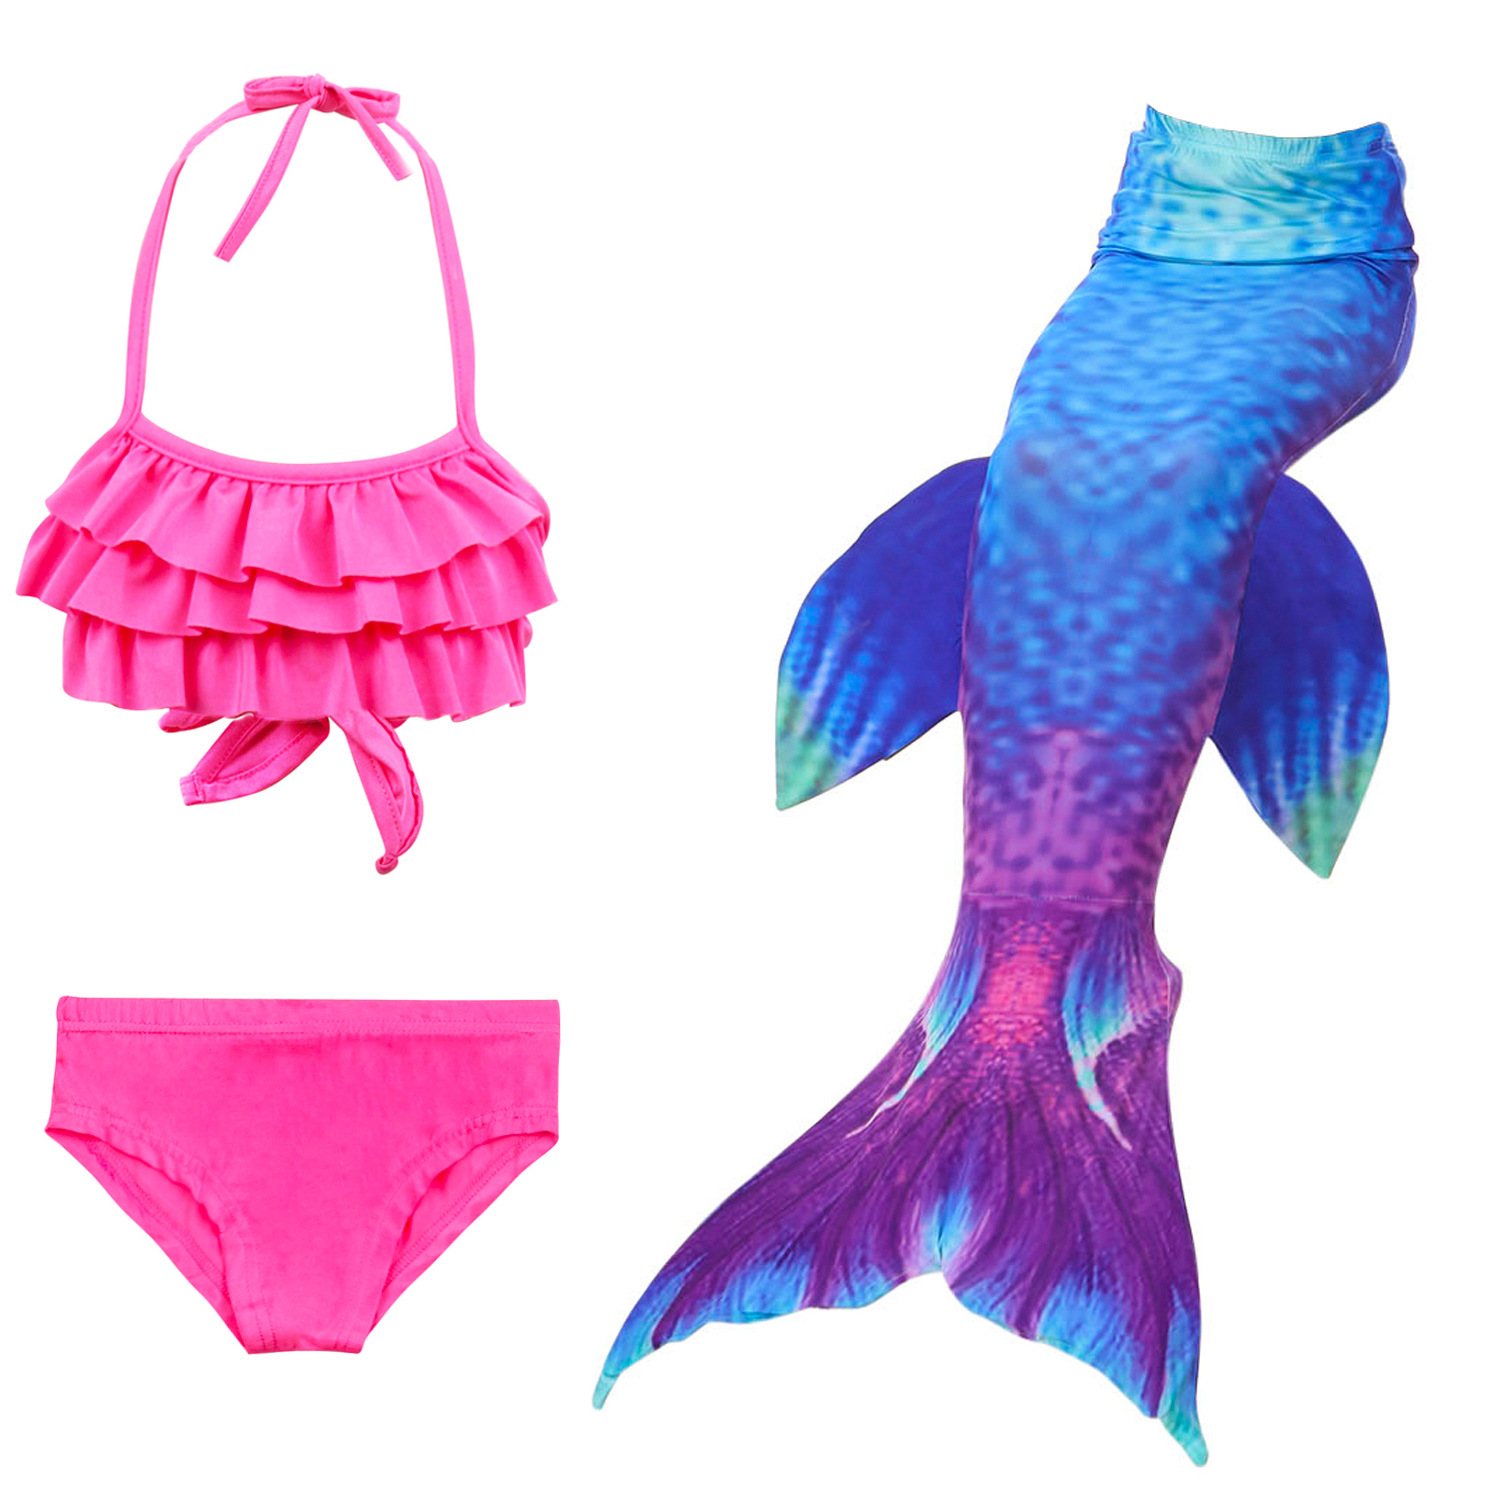 Girls Mermaid Tail For Swimming Girls Bikini Swimsuit Cosplay Kids Swimmalbe Mermaid Tail Princess Dress Costume